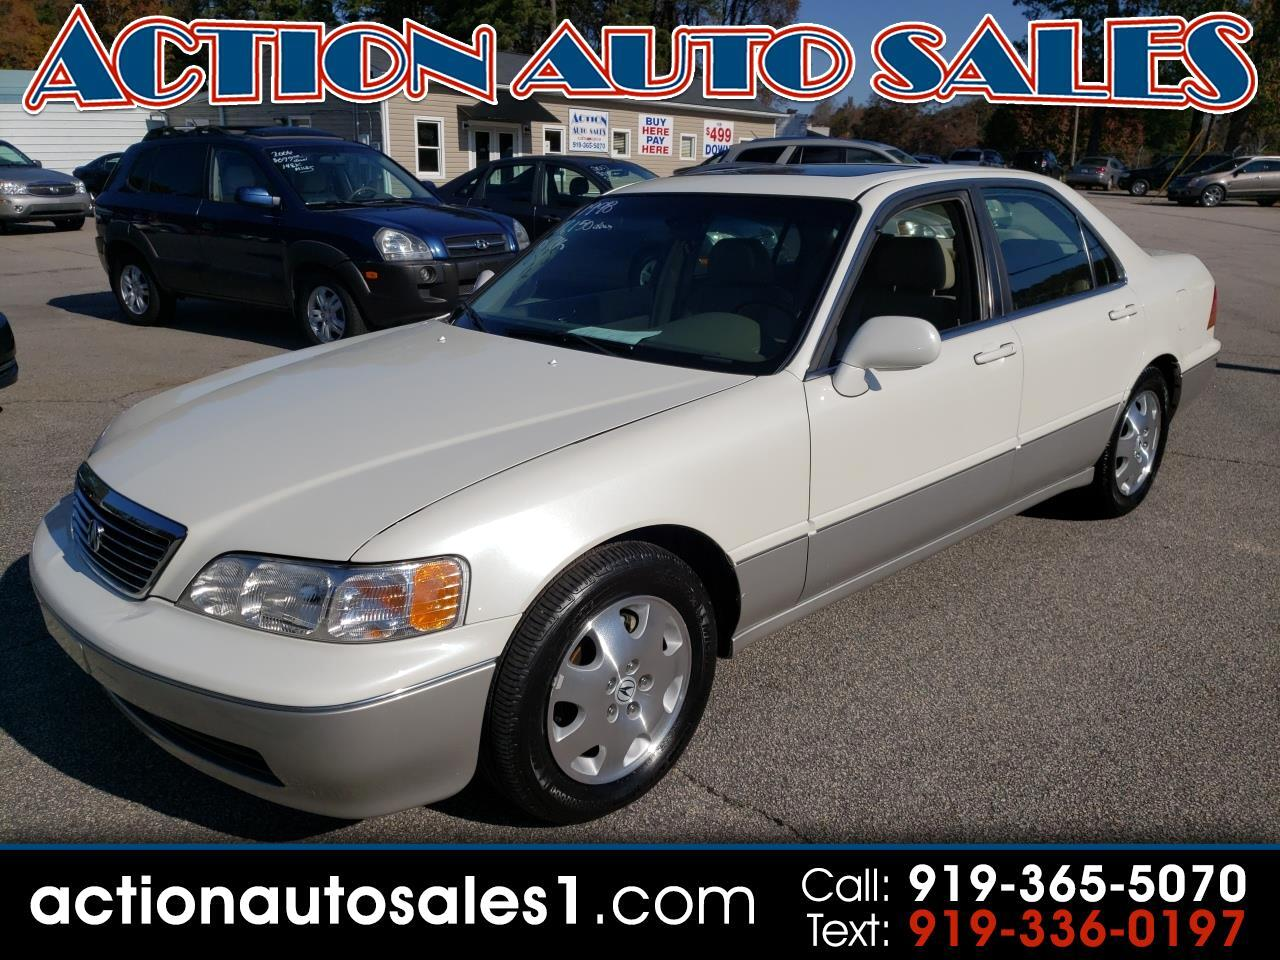 1998 Acura RL 4dr Sdn Special Edition